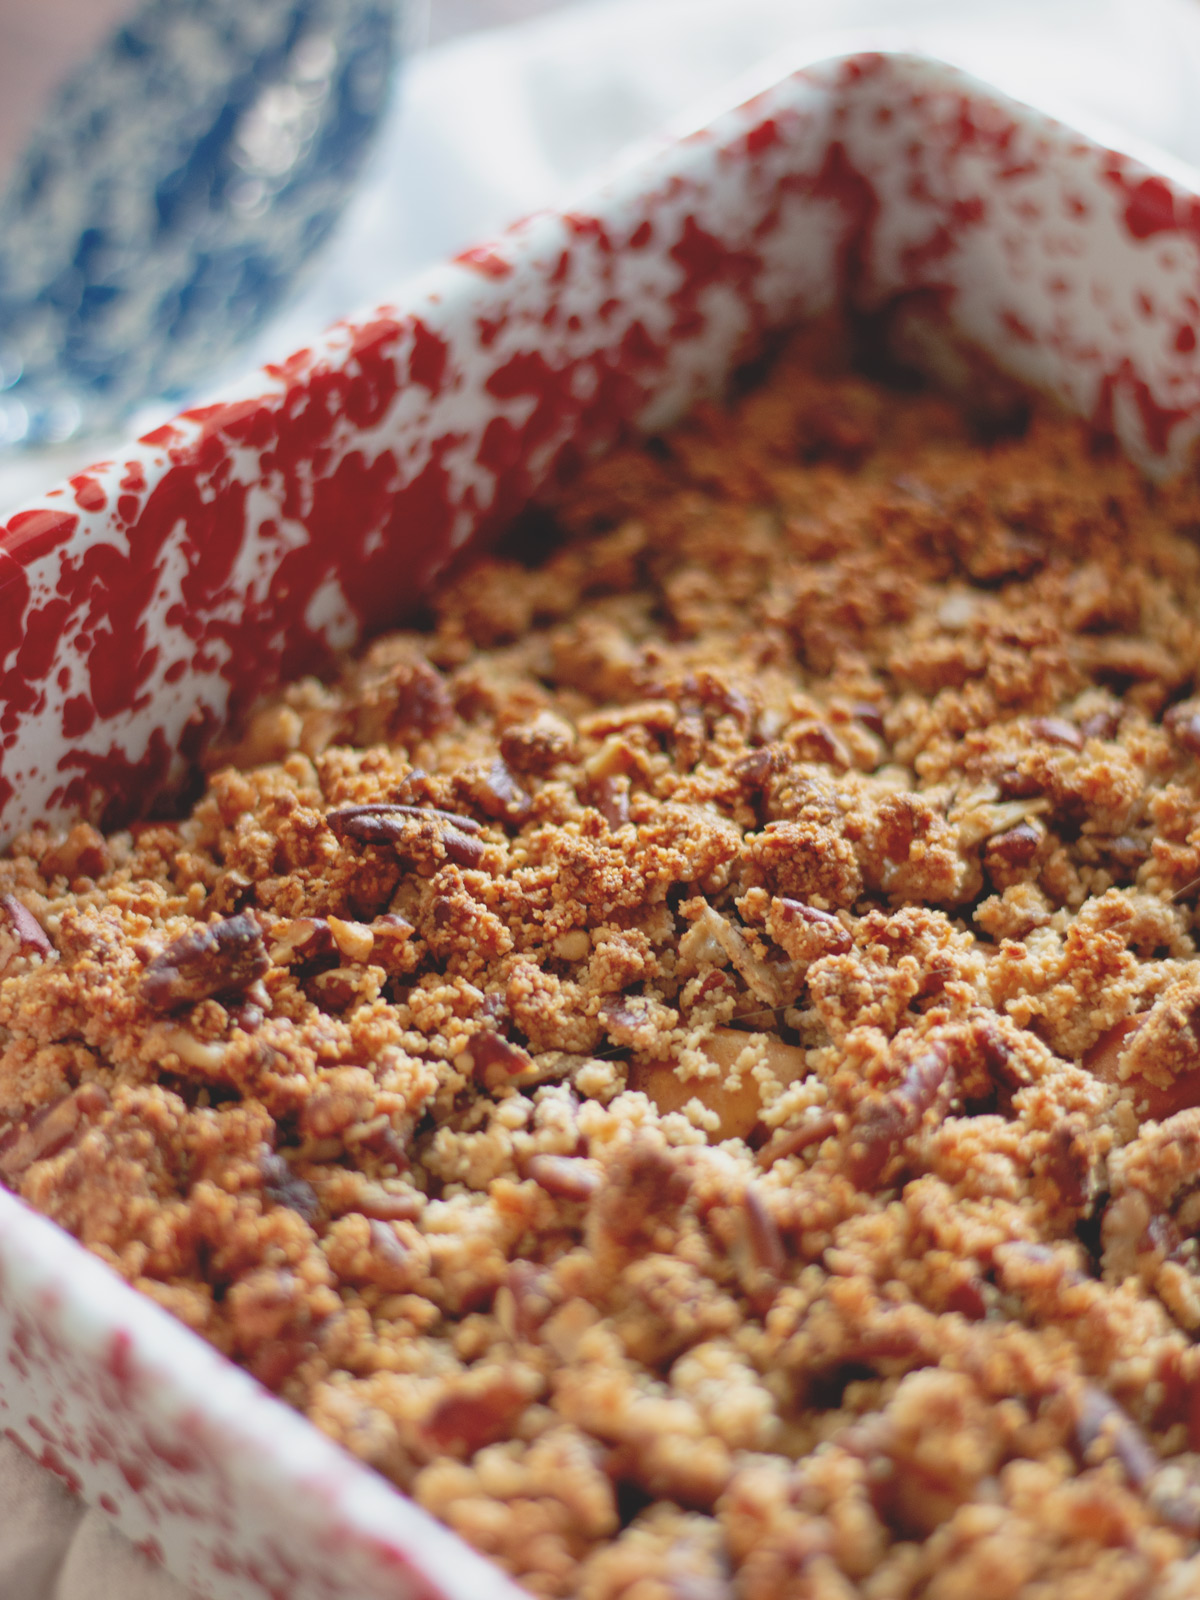 Warm Apple Crisp Dessert - Baked, spiced apples with a scrumptious crumb topping. #paleo #carb #sugarfree